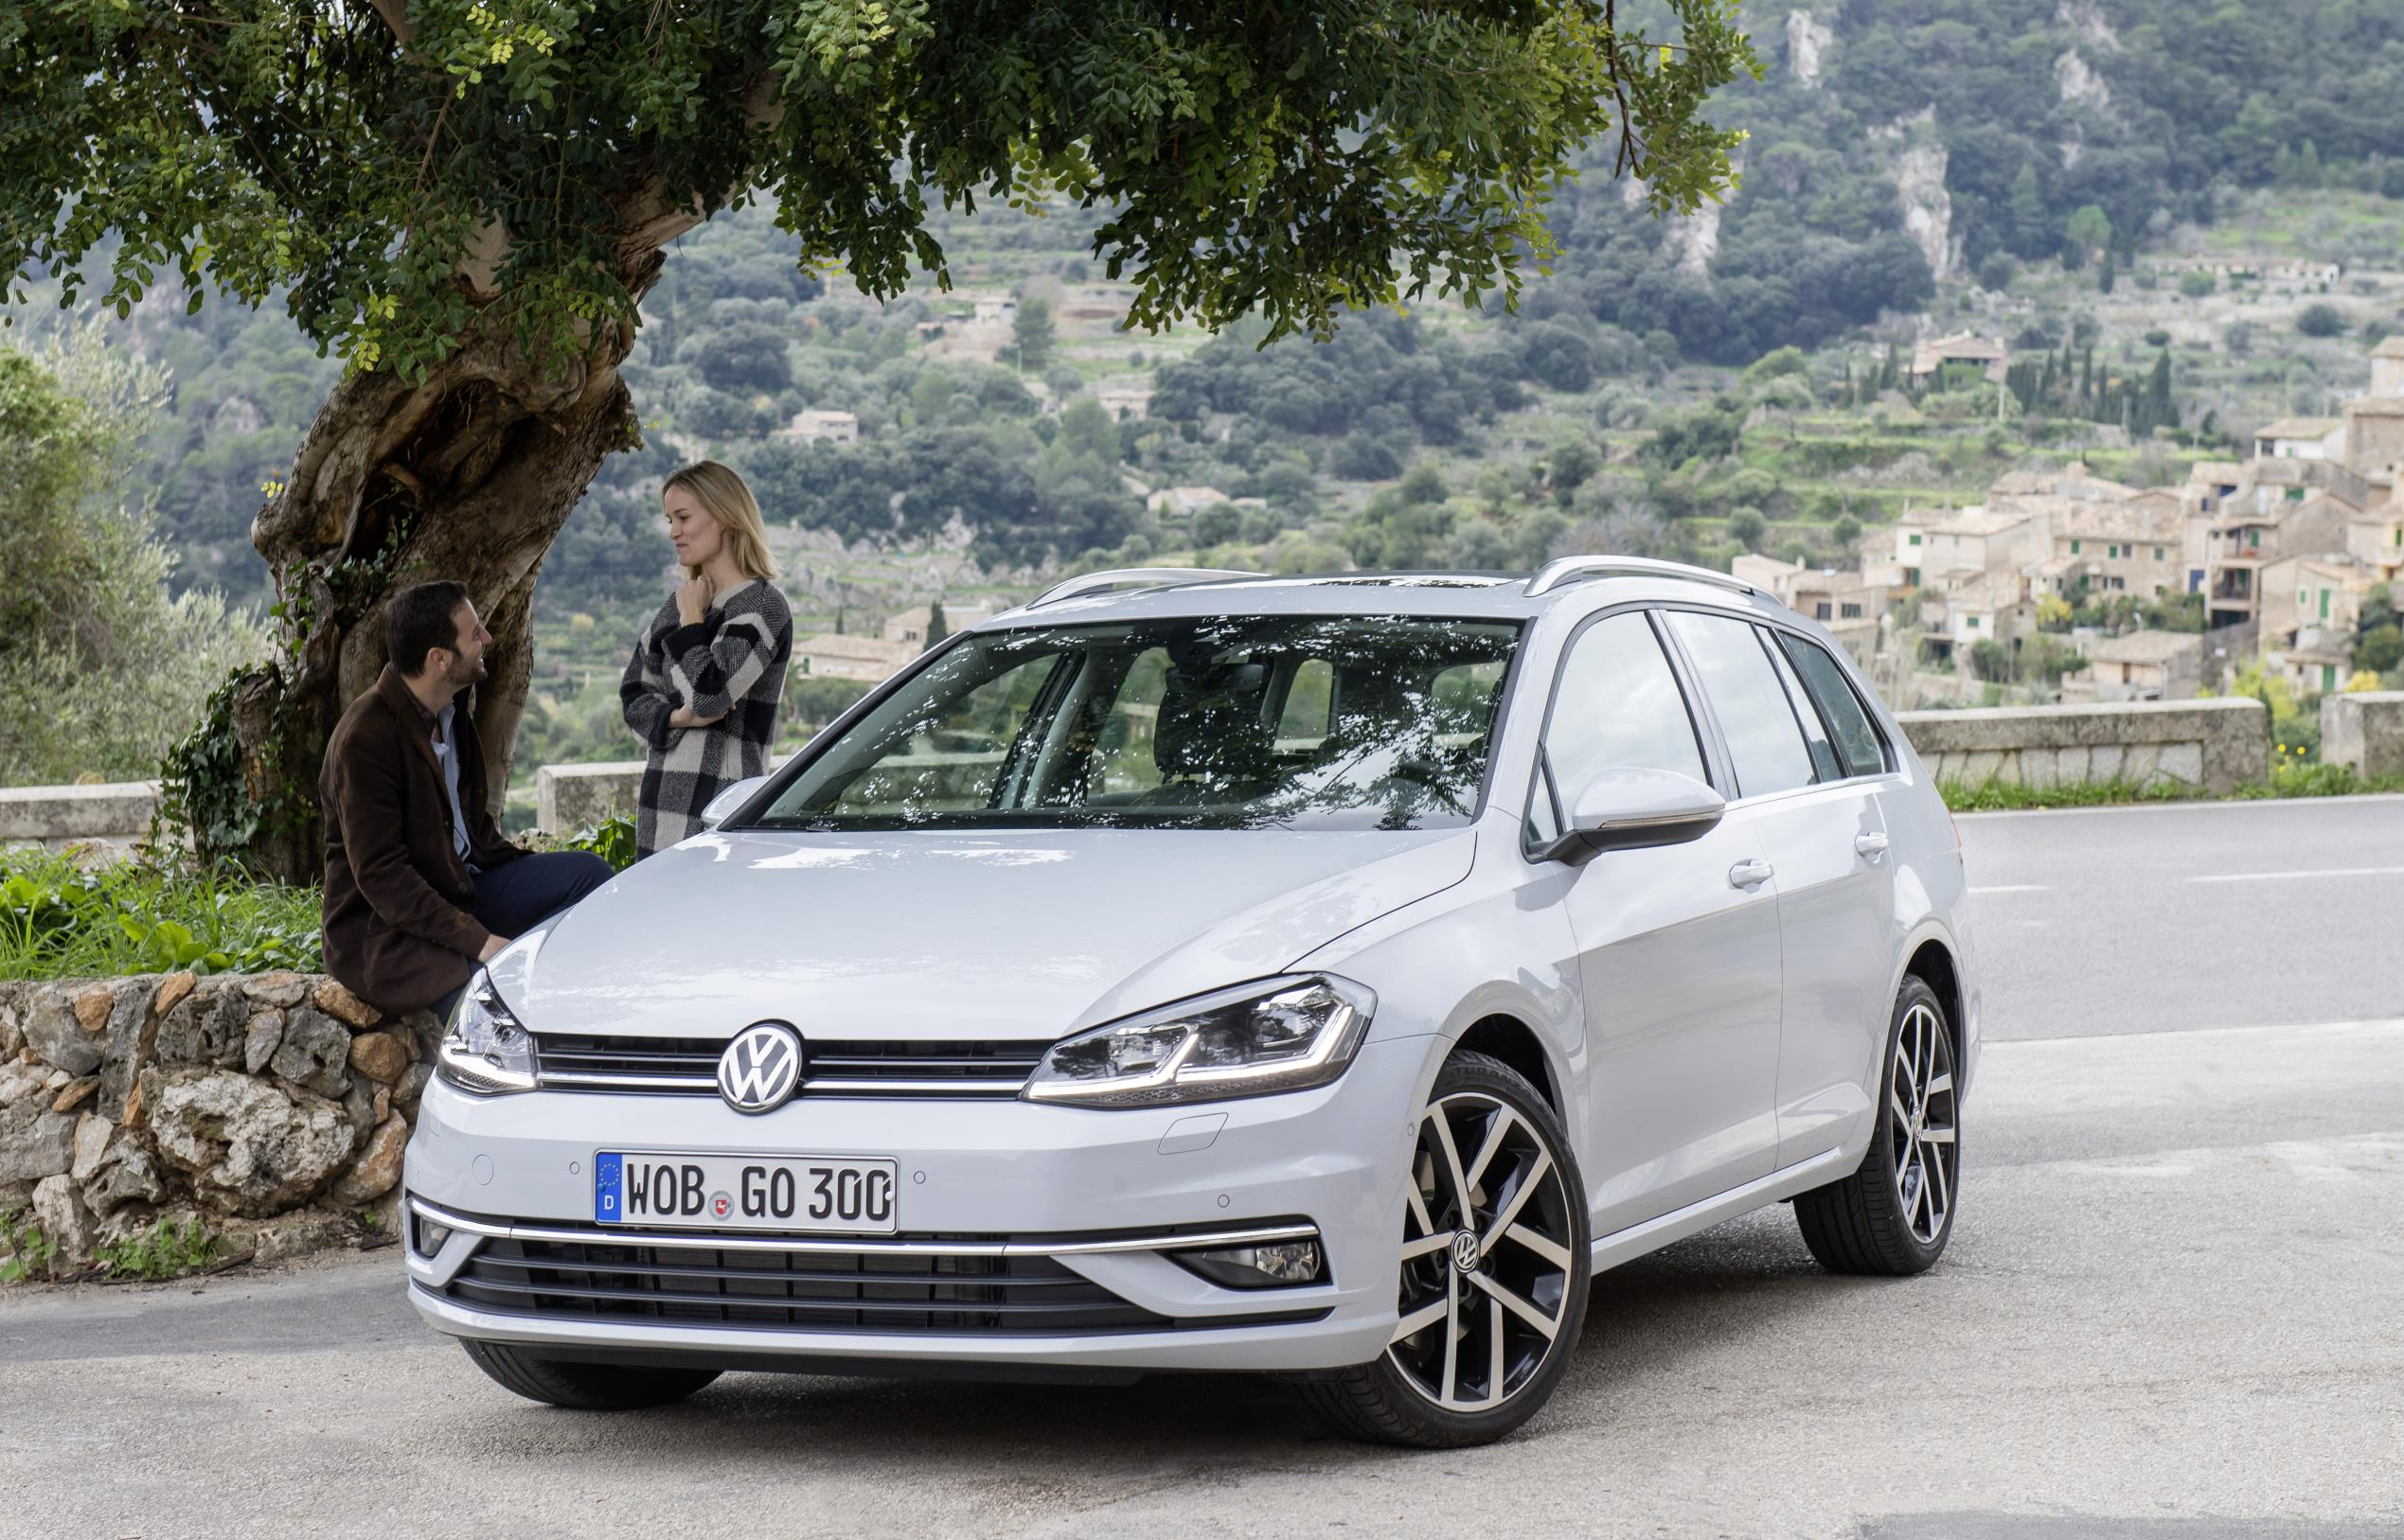 Vw Prices Golf Mk7 Facelift In The Uk Starts From 163 17 625